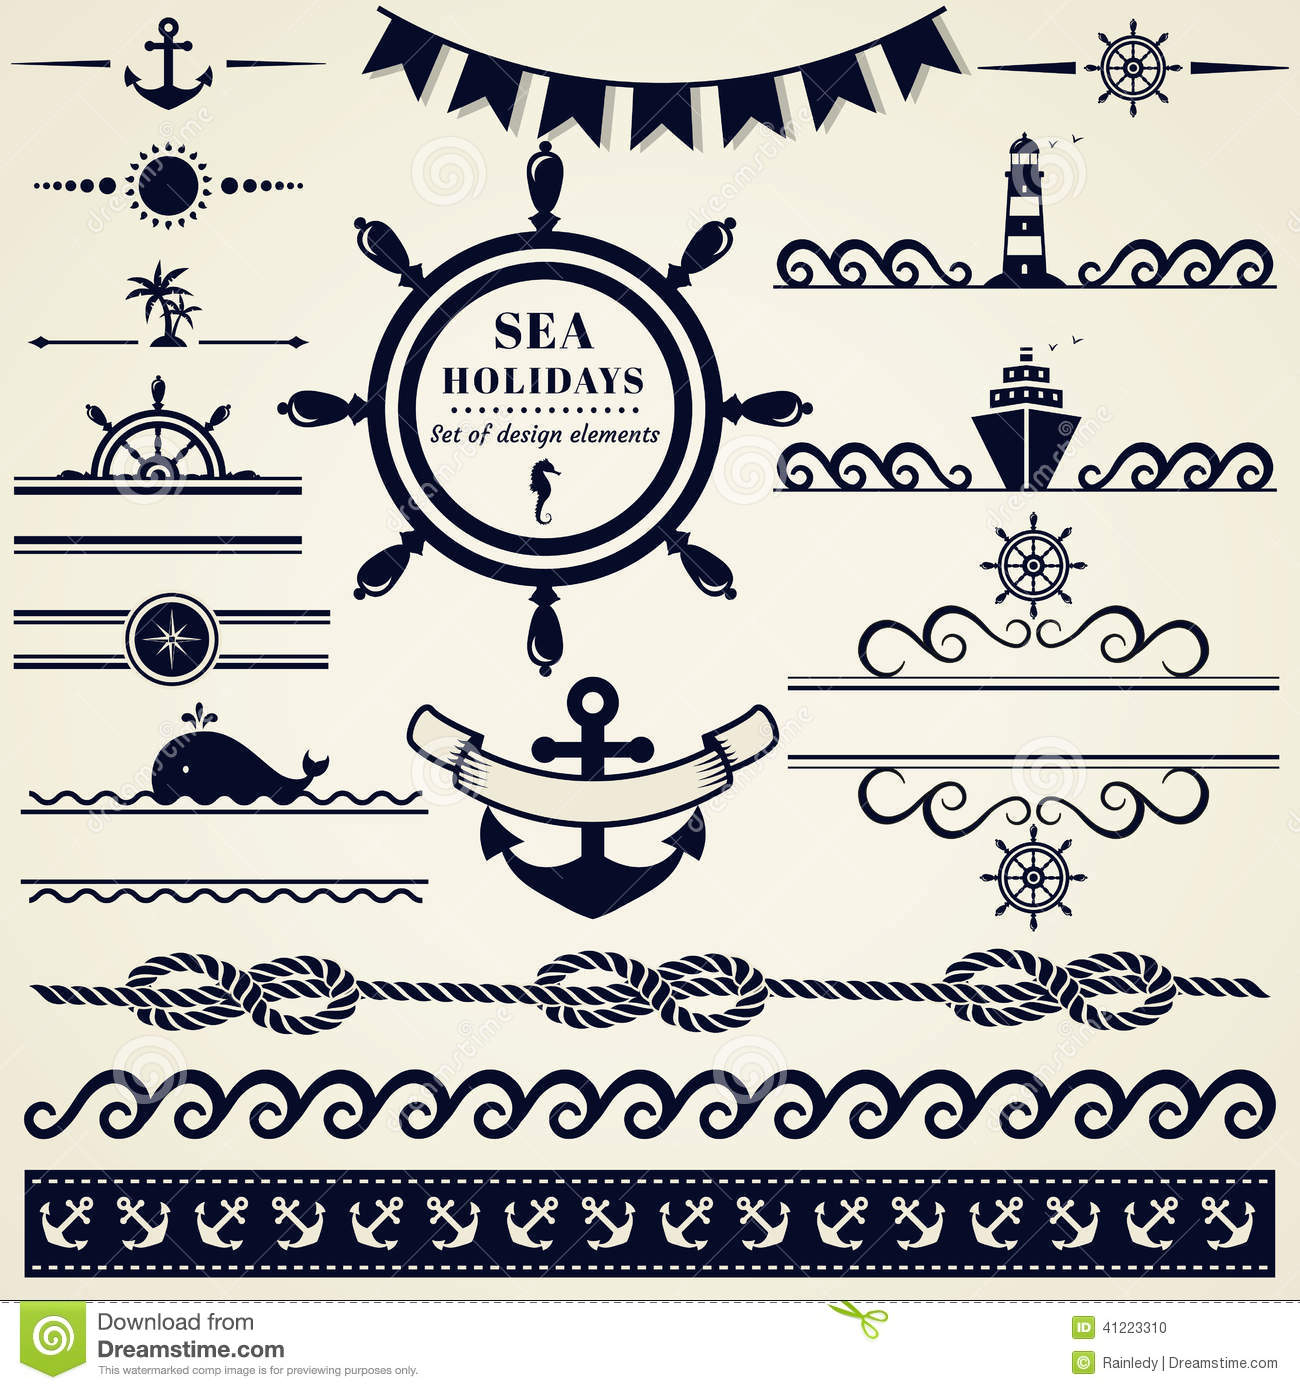 HD wallpapers vector set of calligraphic design elements and page decoration dividers